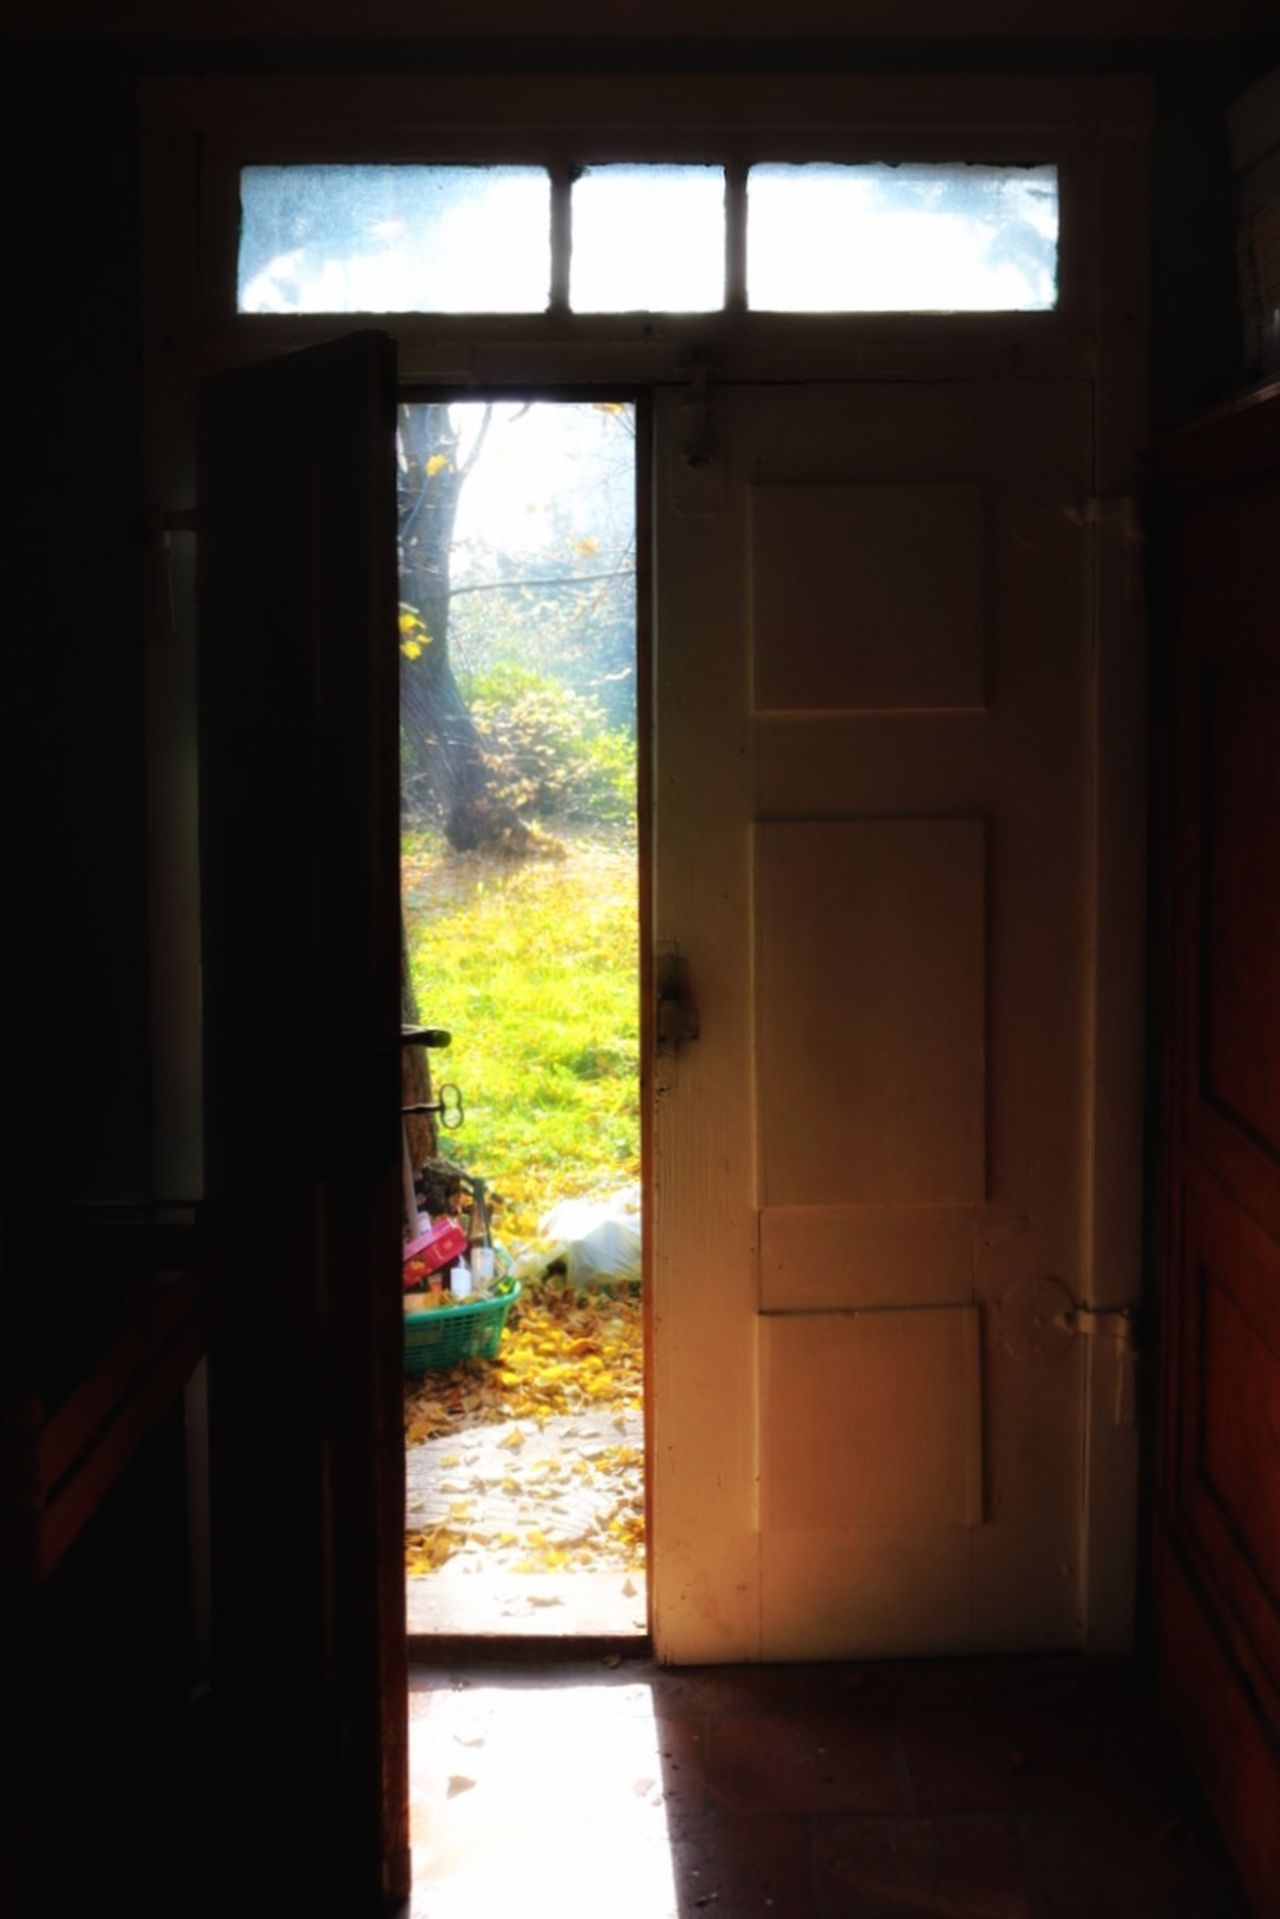 the way out Architecture Domestic Room House Door Doorway Sun